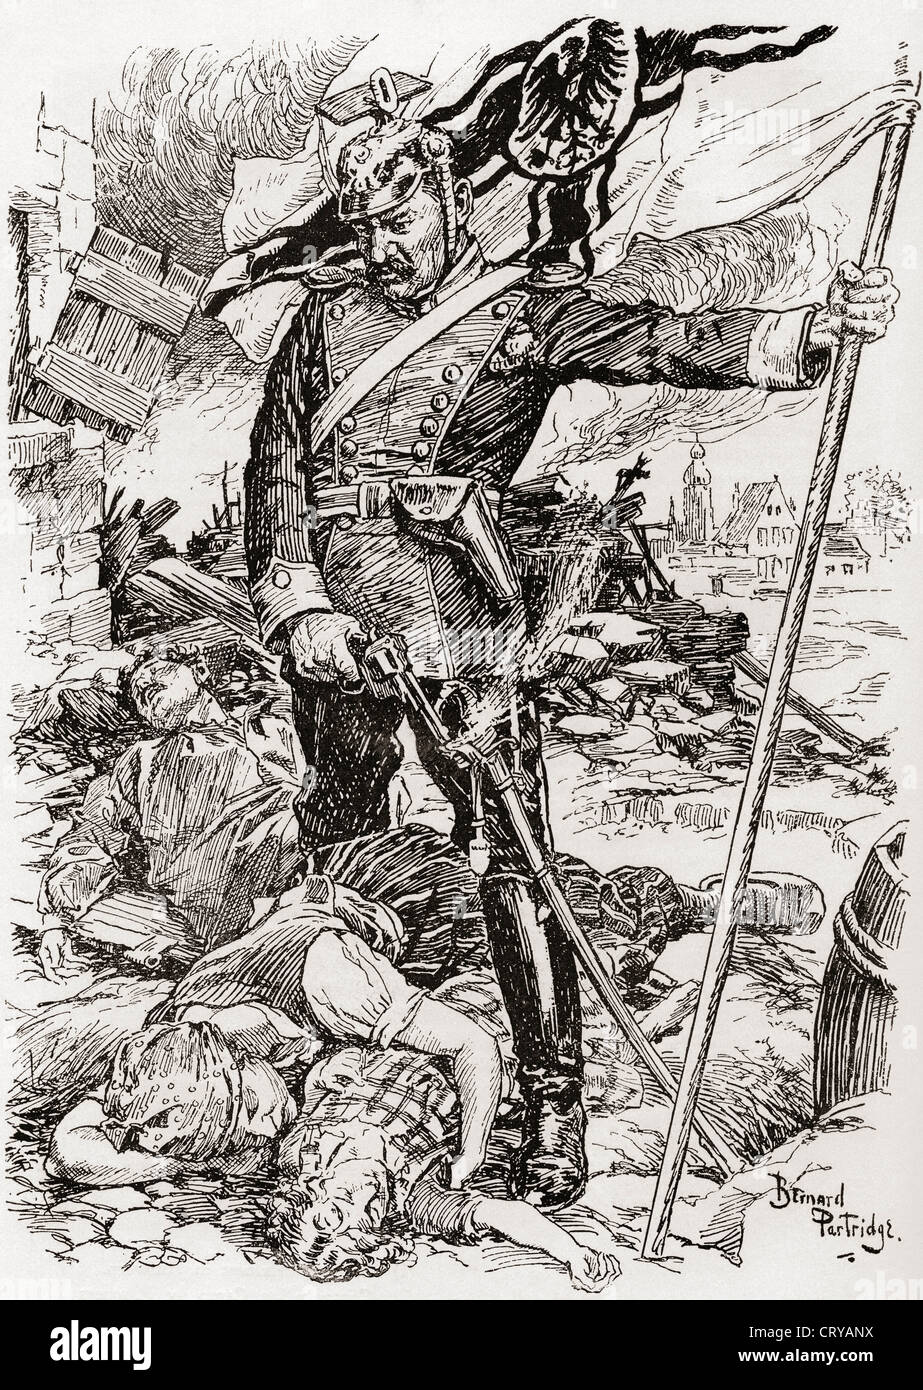 Propaganda illustration entitled The Triumph of Culture showing German soldier standing over bodies of murdered - Stock Image